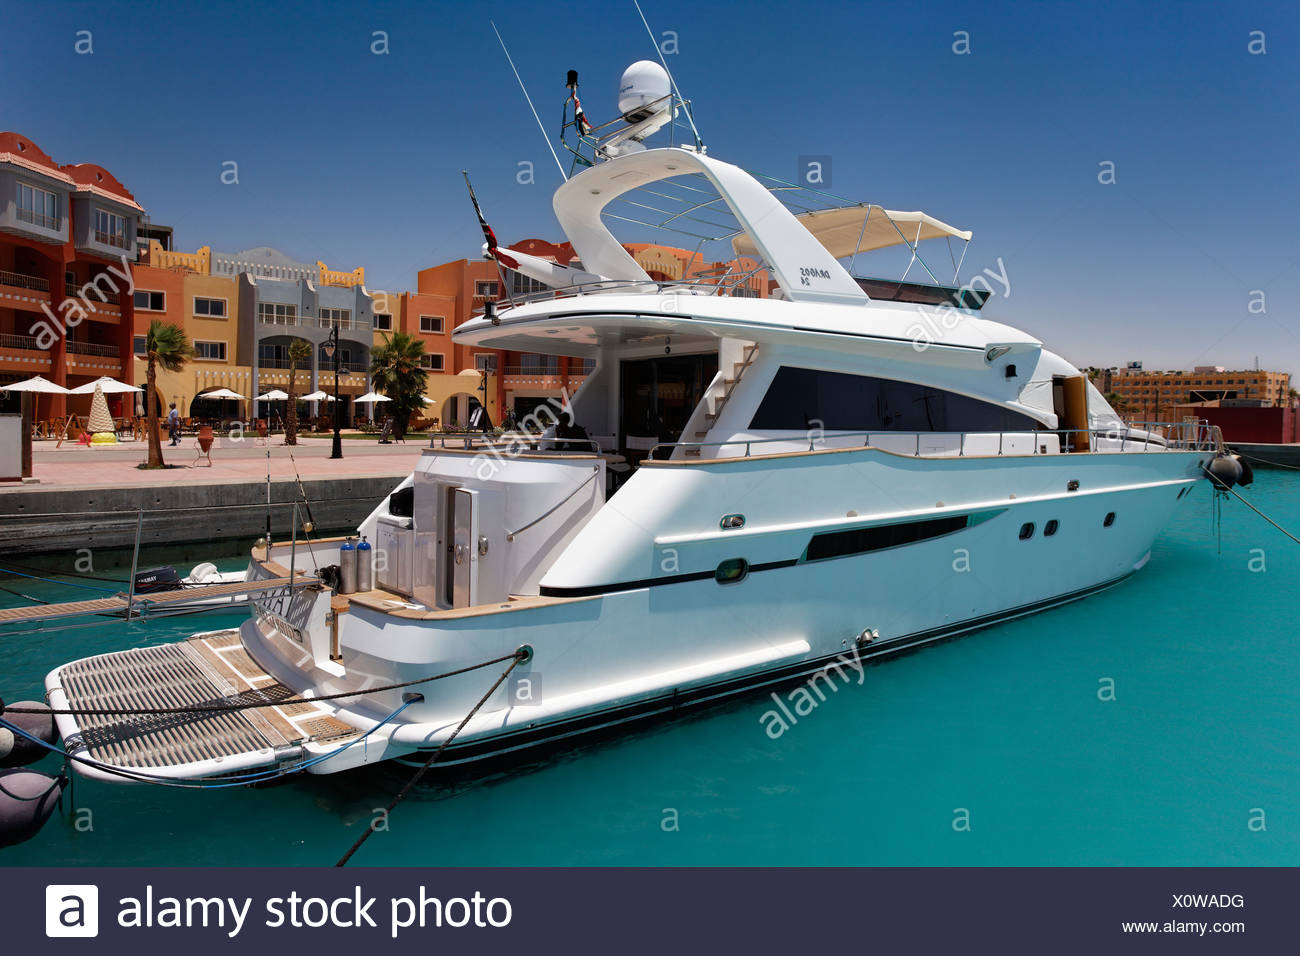 Private yacht in front of houses in the marina, Hurghada, Egypt, Red Sea, Africa - Stock Image